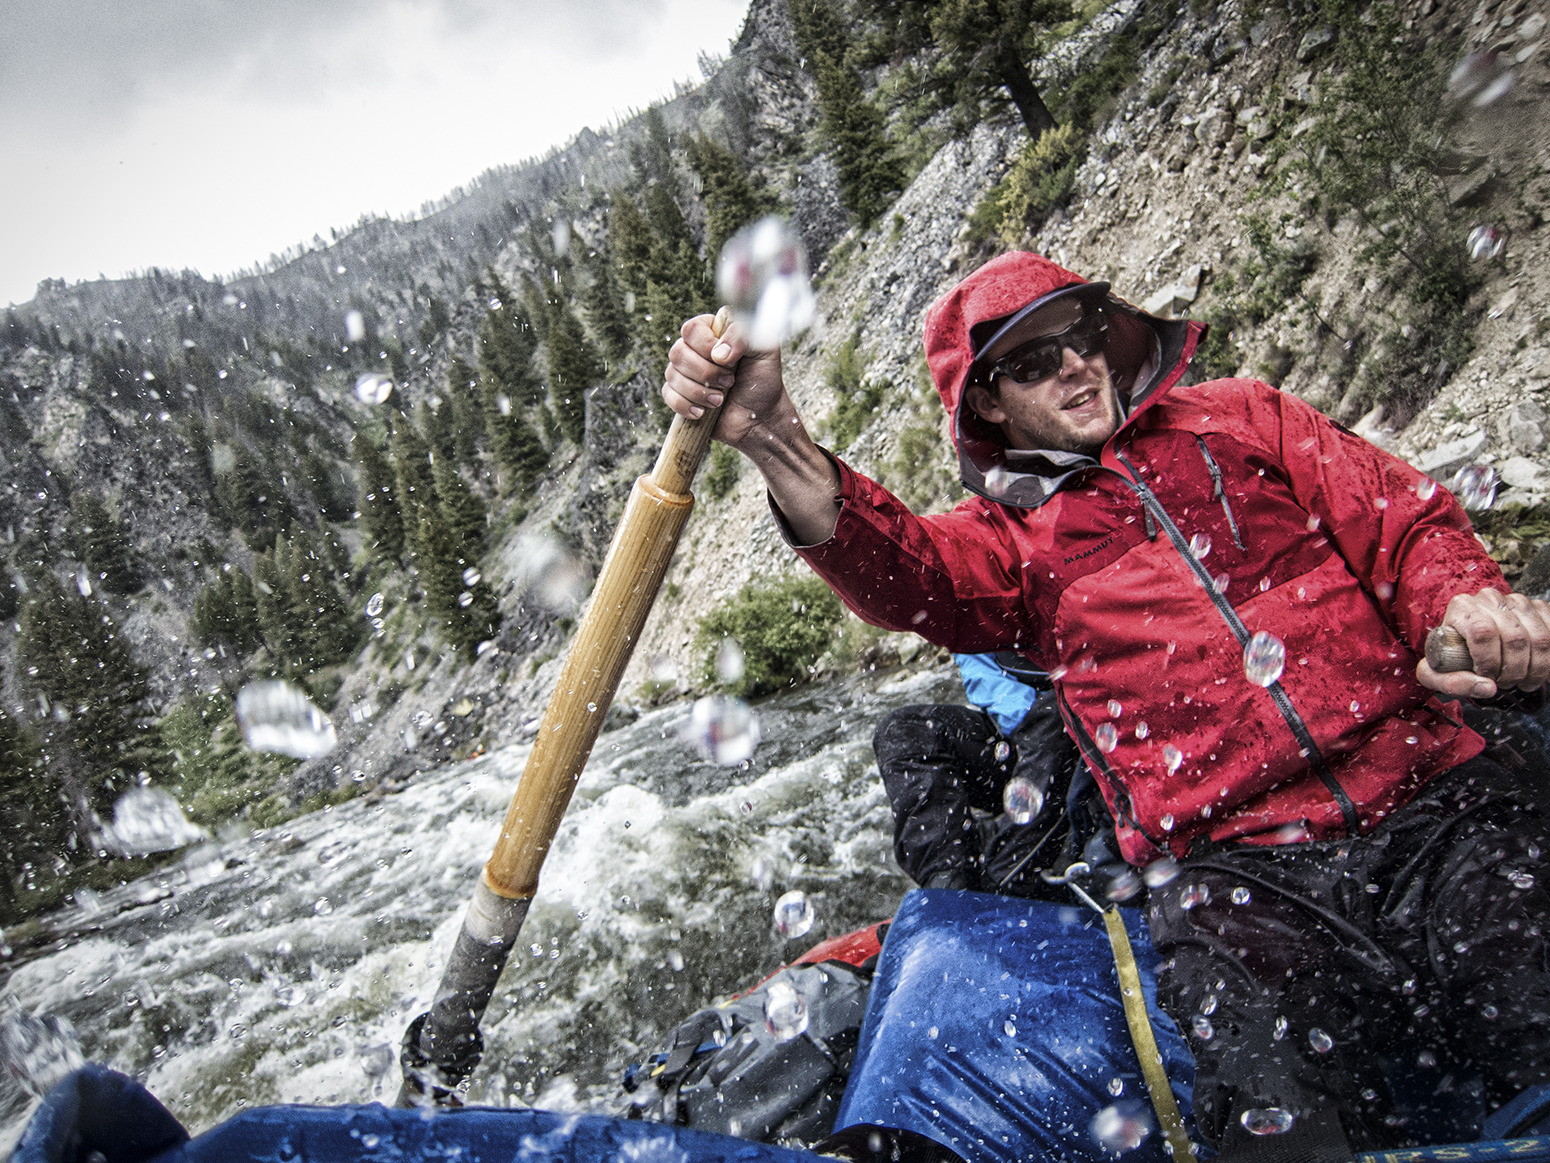 River guide Fritz Horst on a rainy day on the Middle Fork of the Salmon River.